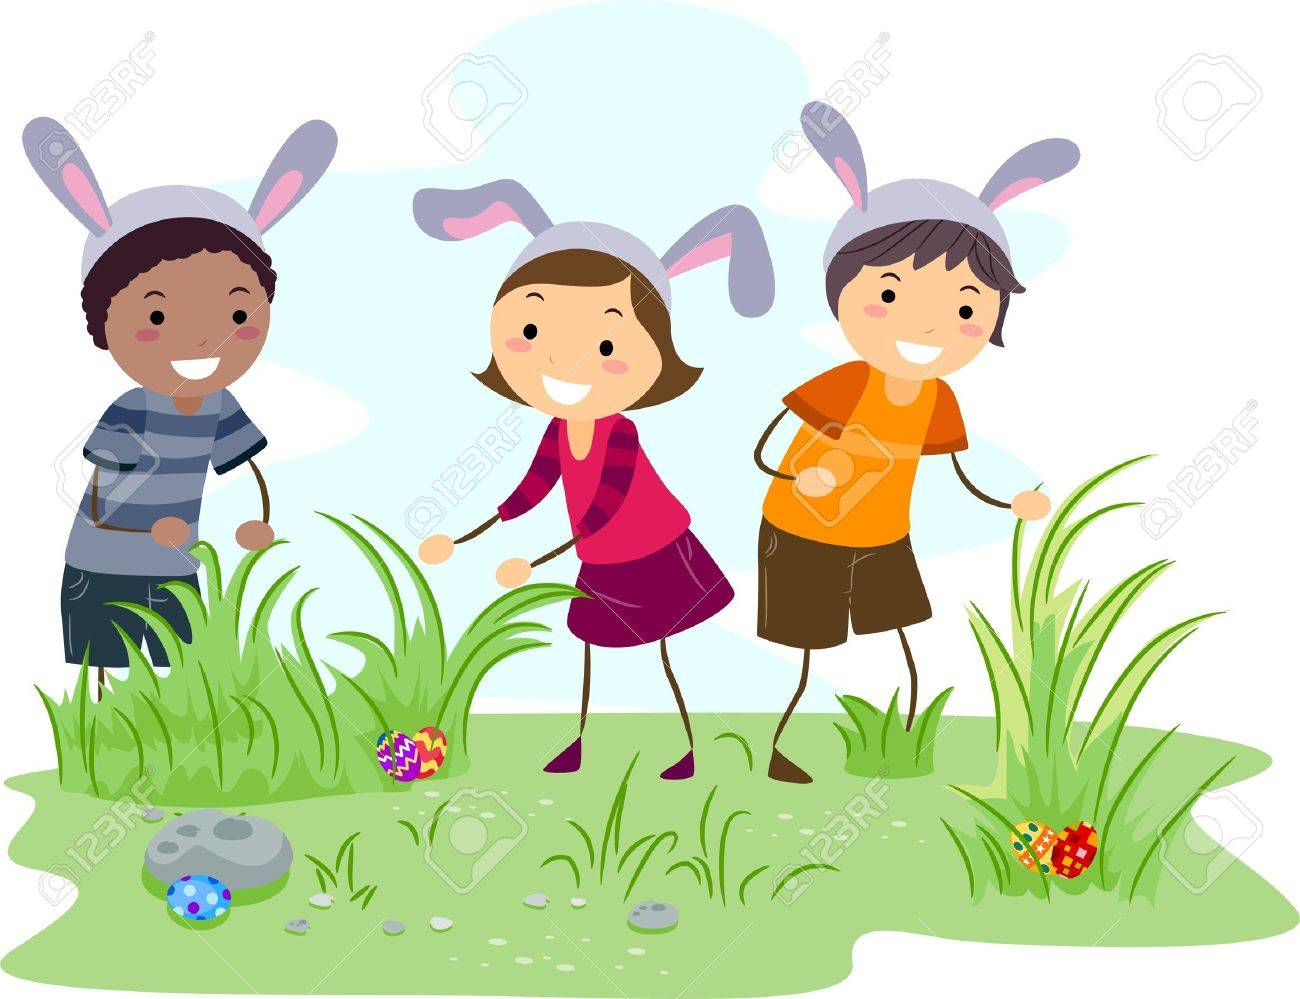 Illustration Of Kids On An Easter Egg Hunt Stock Photo, Picture And ... for Easter Egg Hunt Clipart  51ane